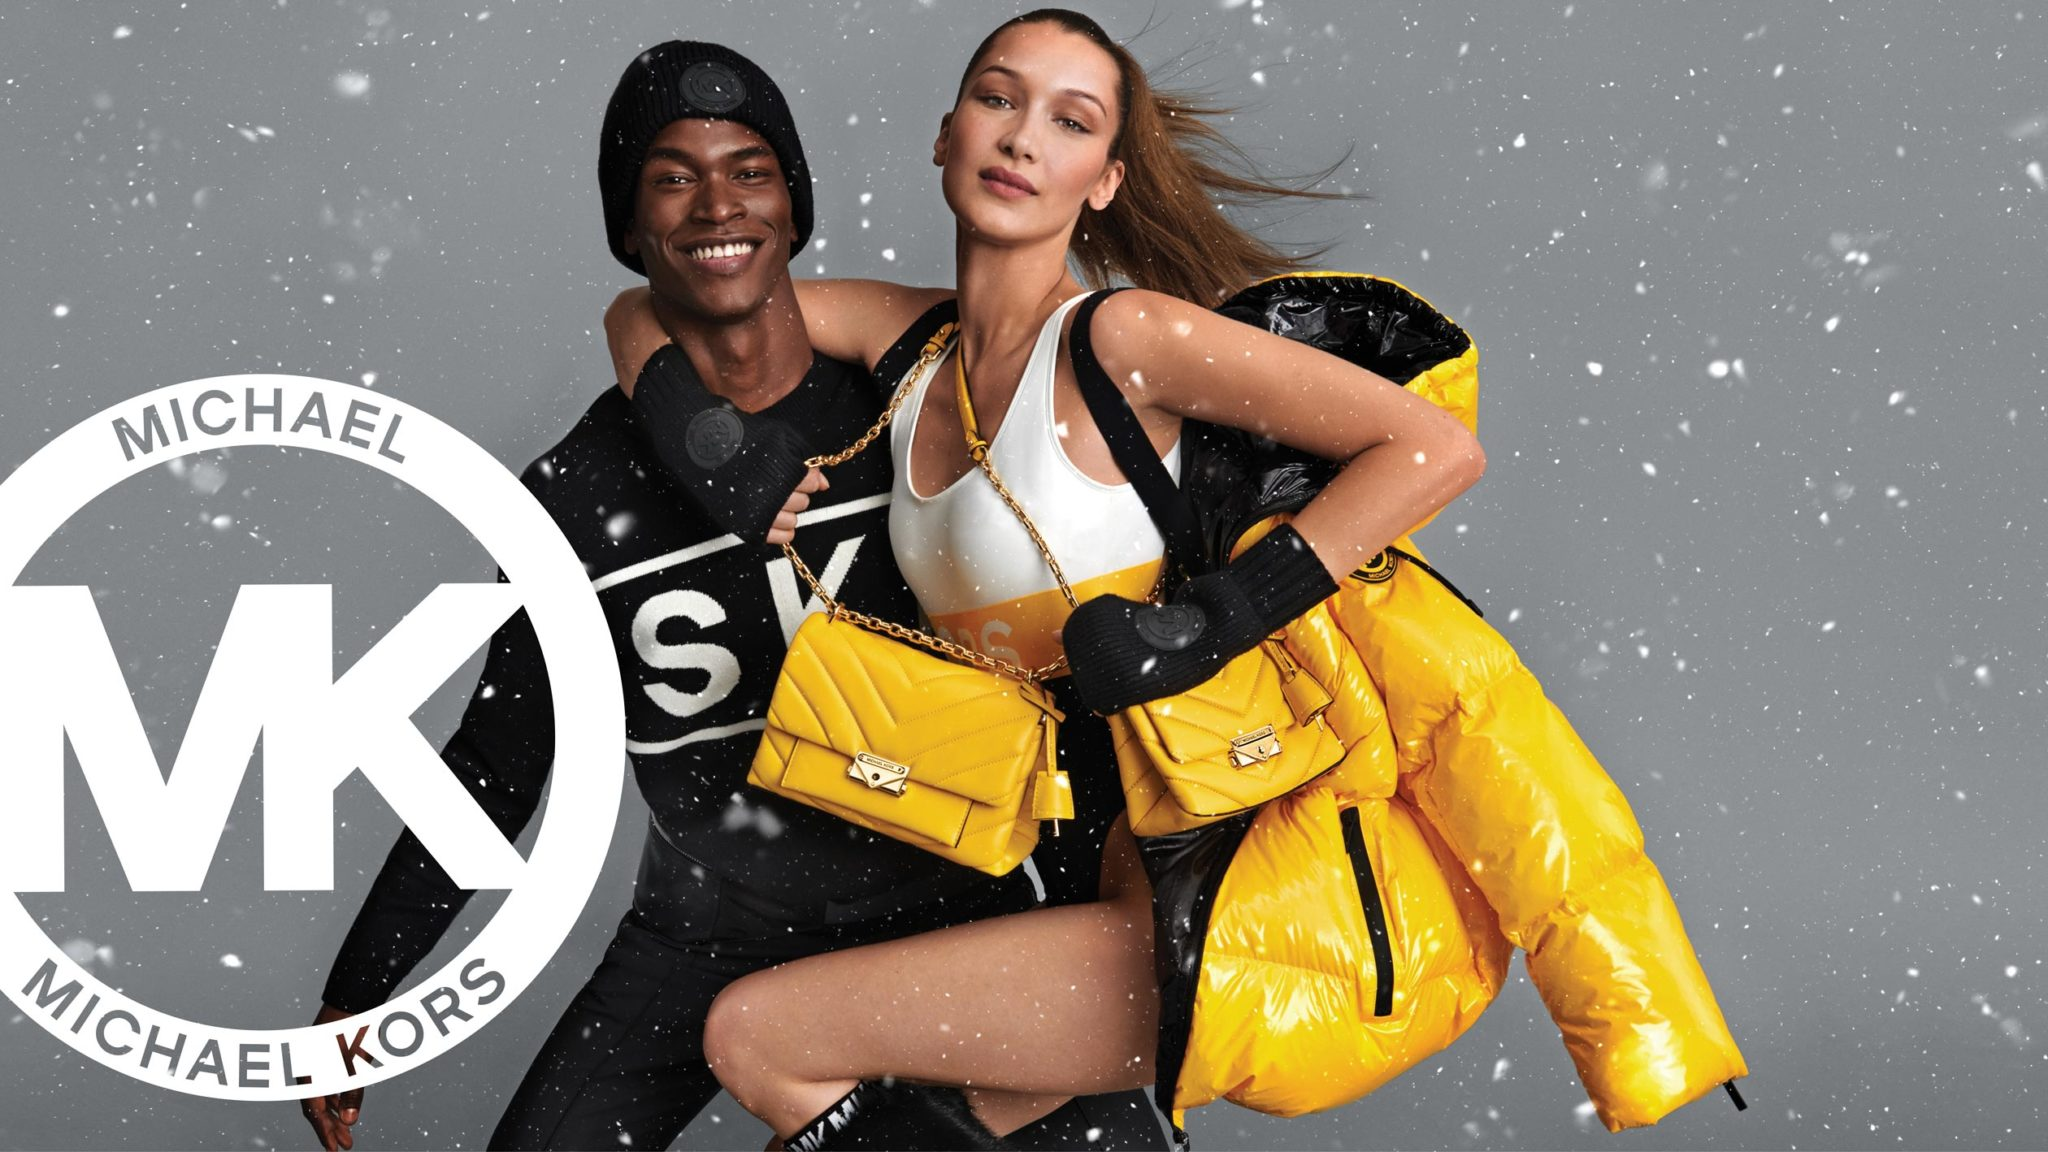 MICHAEL-MICHAEL-KORS-HOLIDAY-2020-AD-CAMPAIGN-THE-IMPRESSION-005